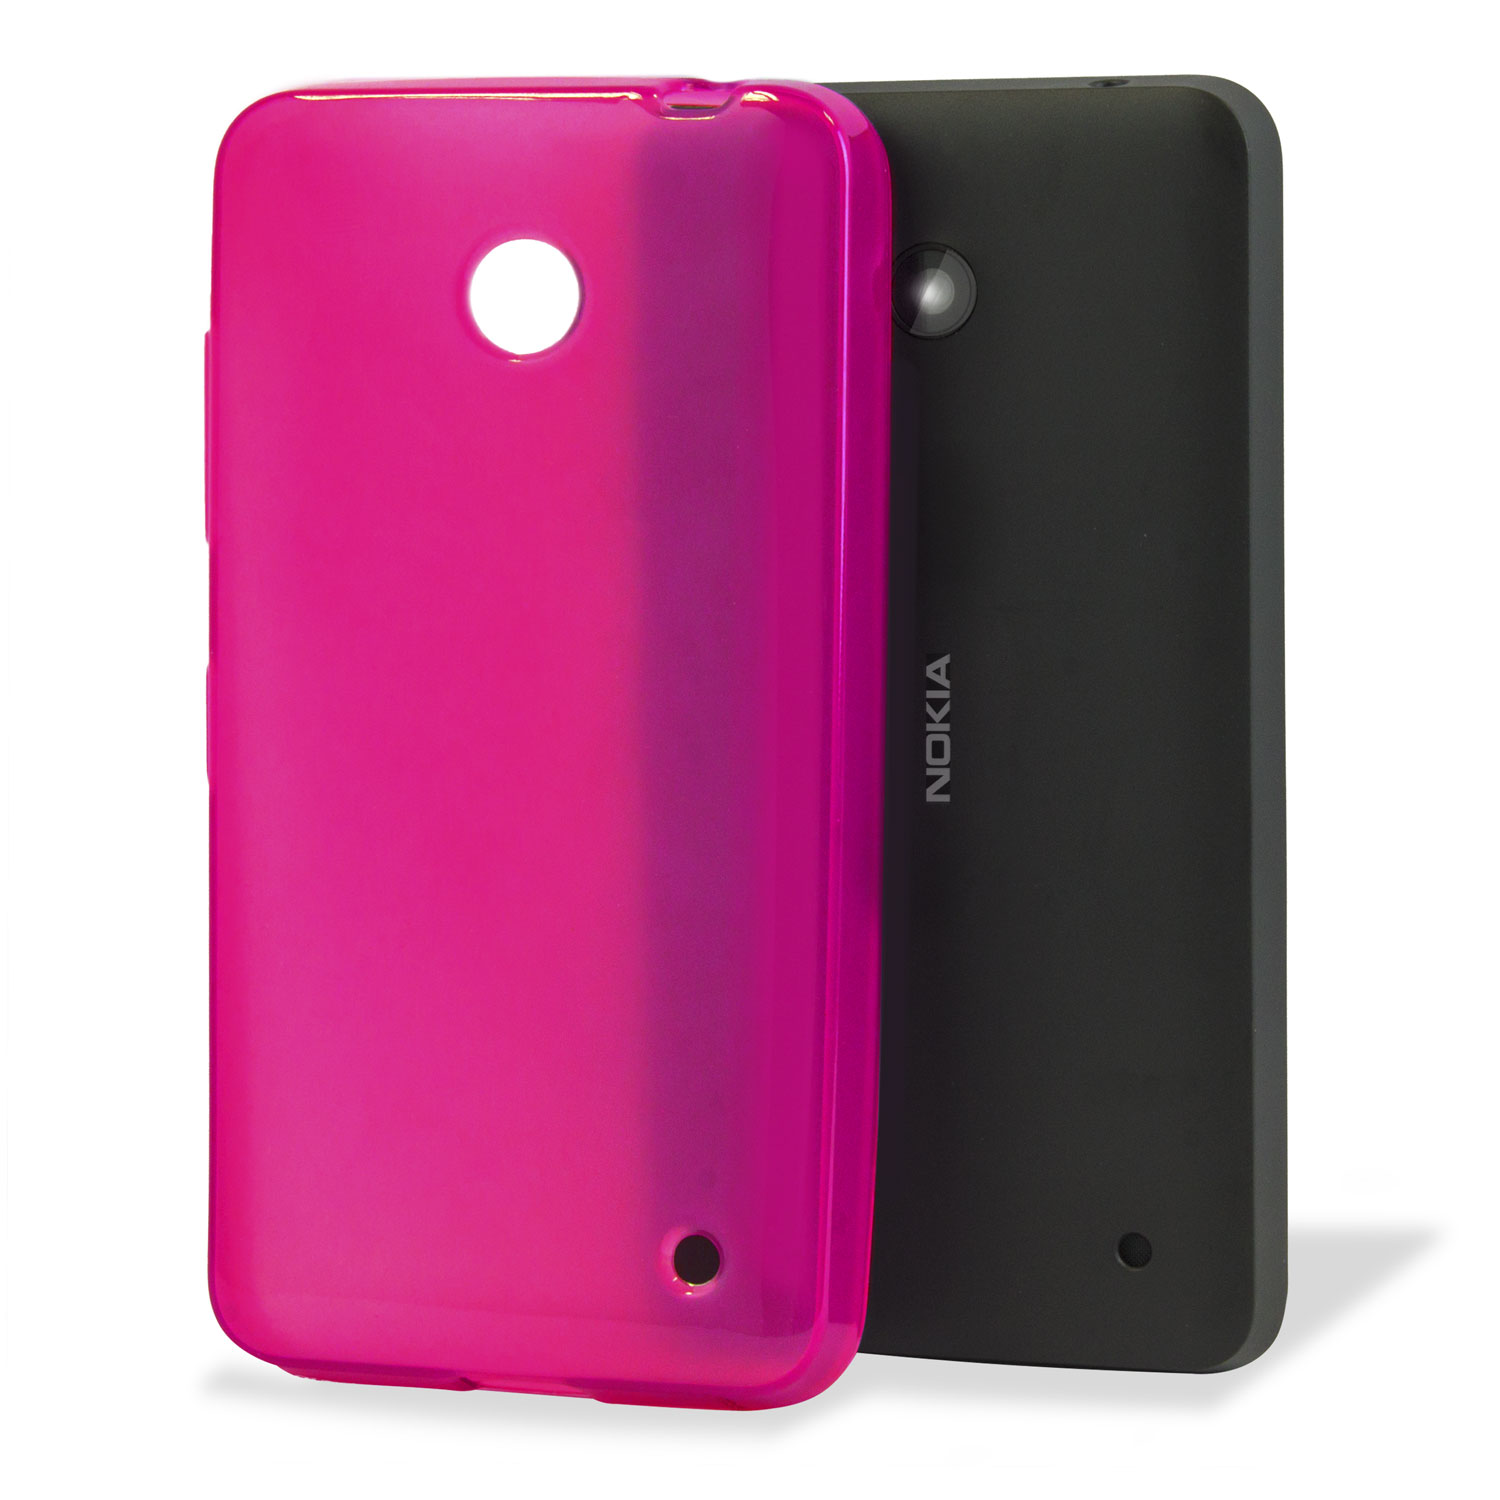 Flexishield Nokia Lumia 635 / 630 Gel Case - Hot Pink